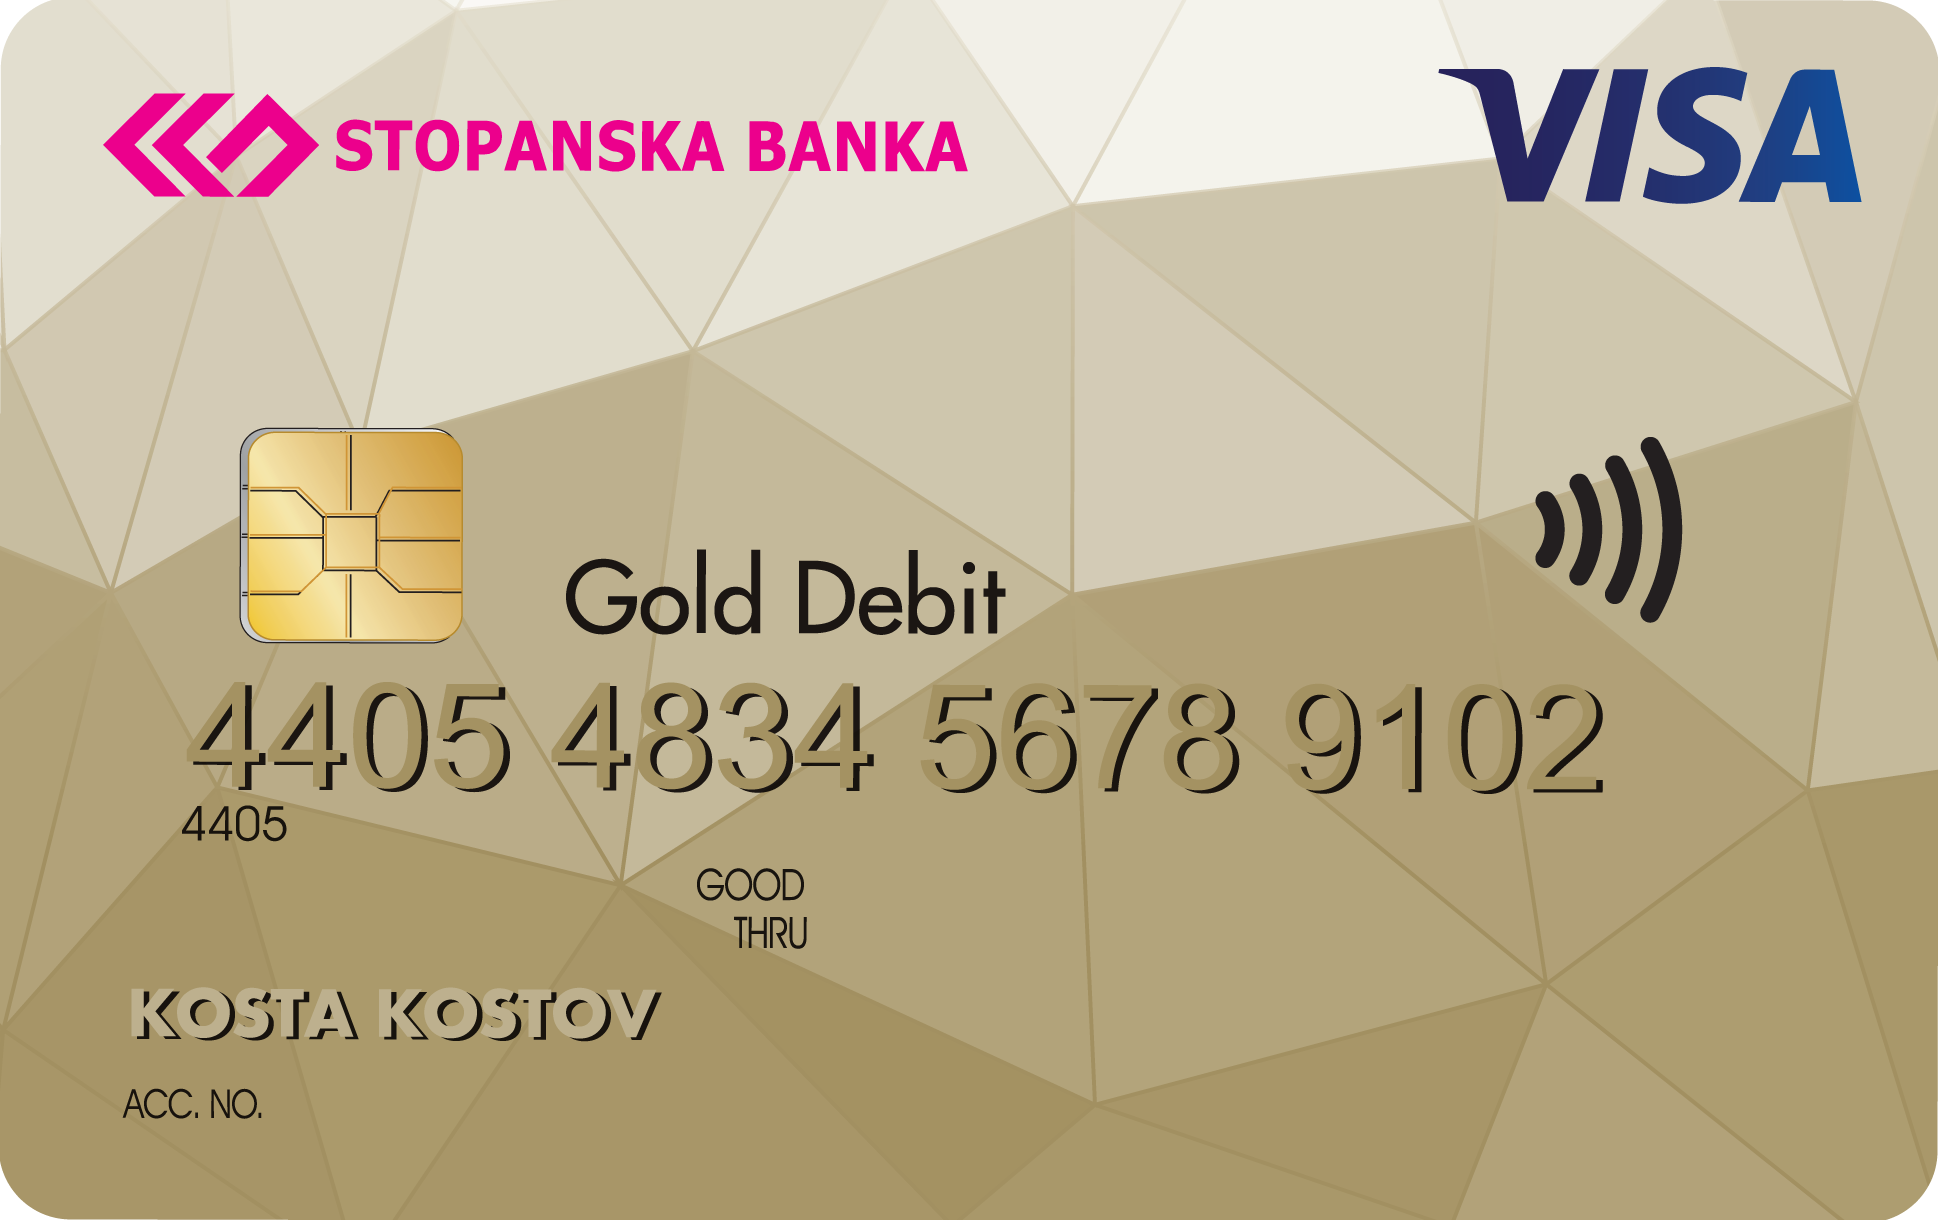 VISA_Gold_Debit_2016